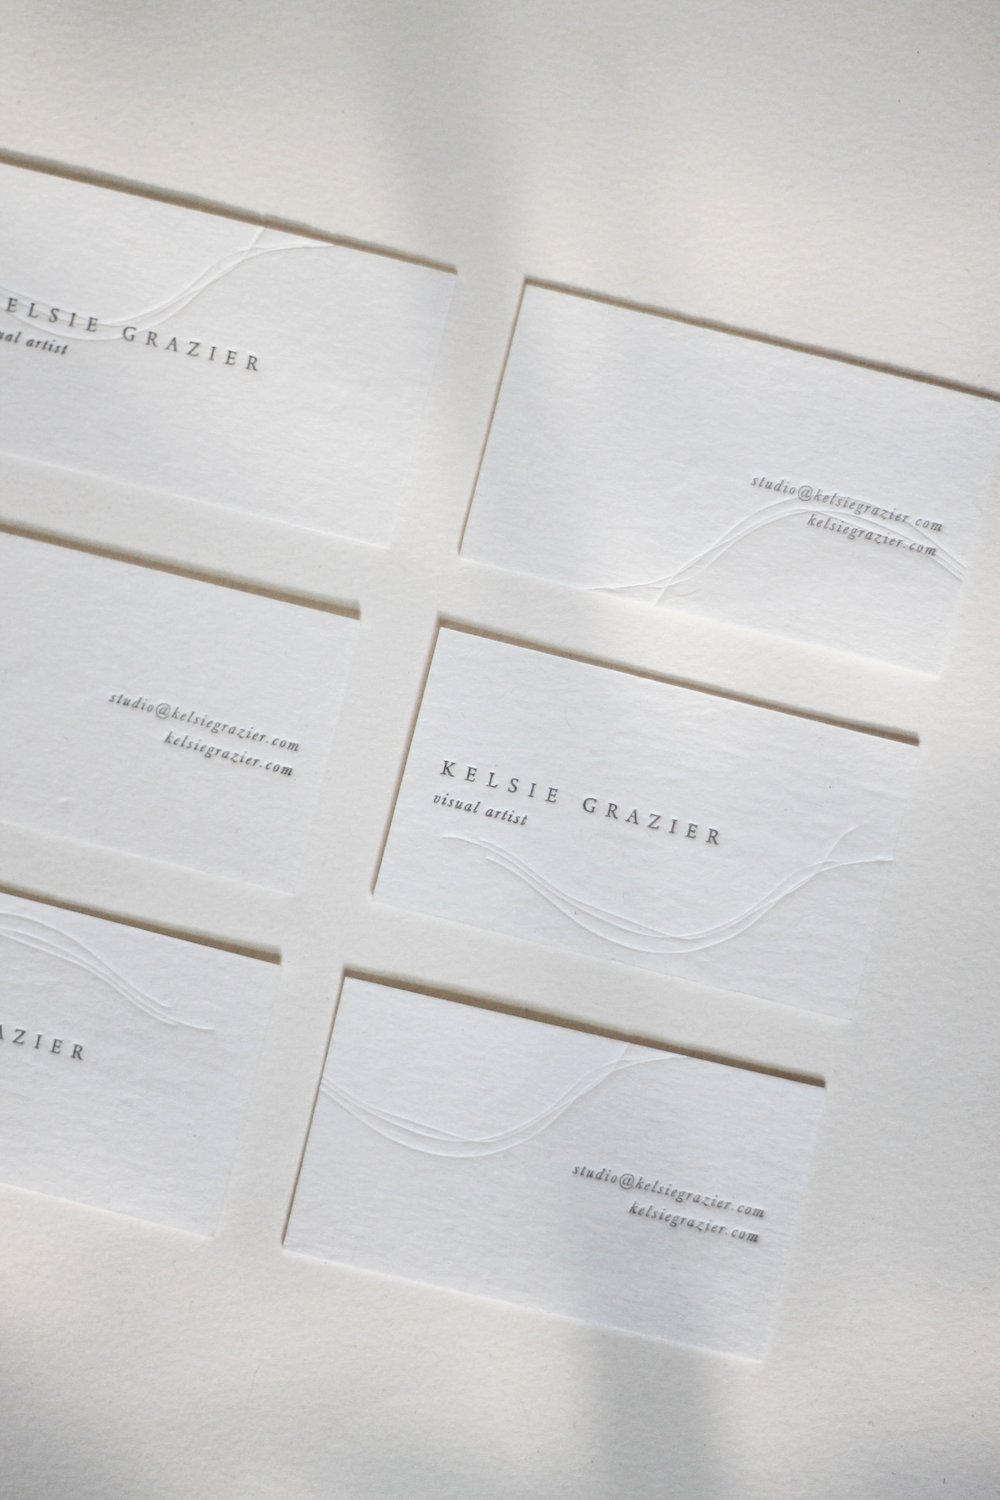 Kelsie Grazier Branding by Belinda Love Lee